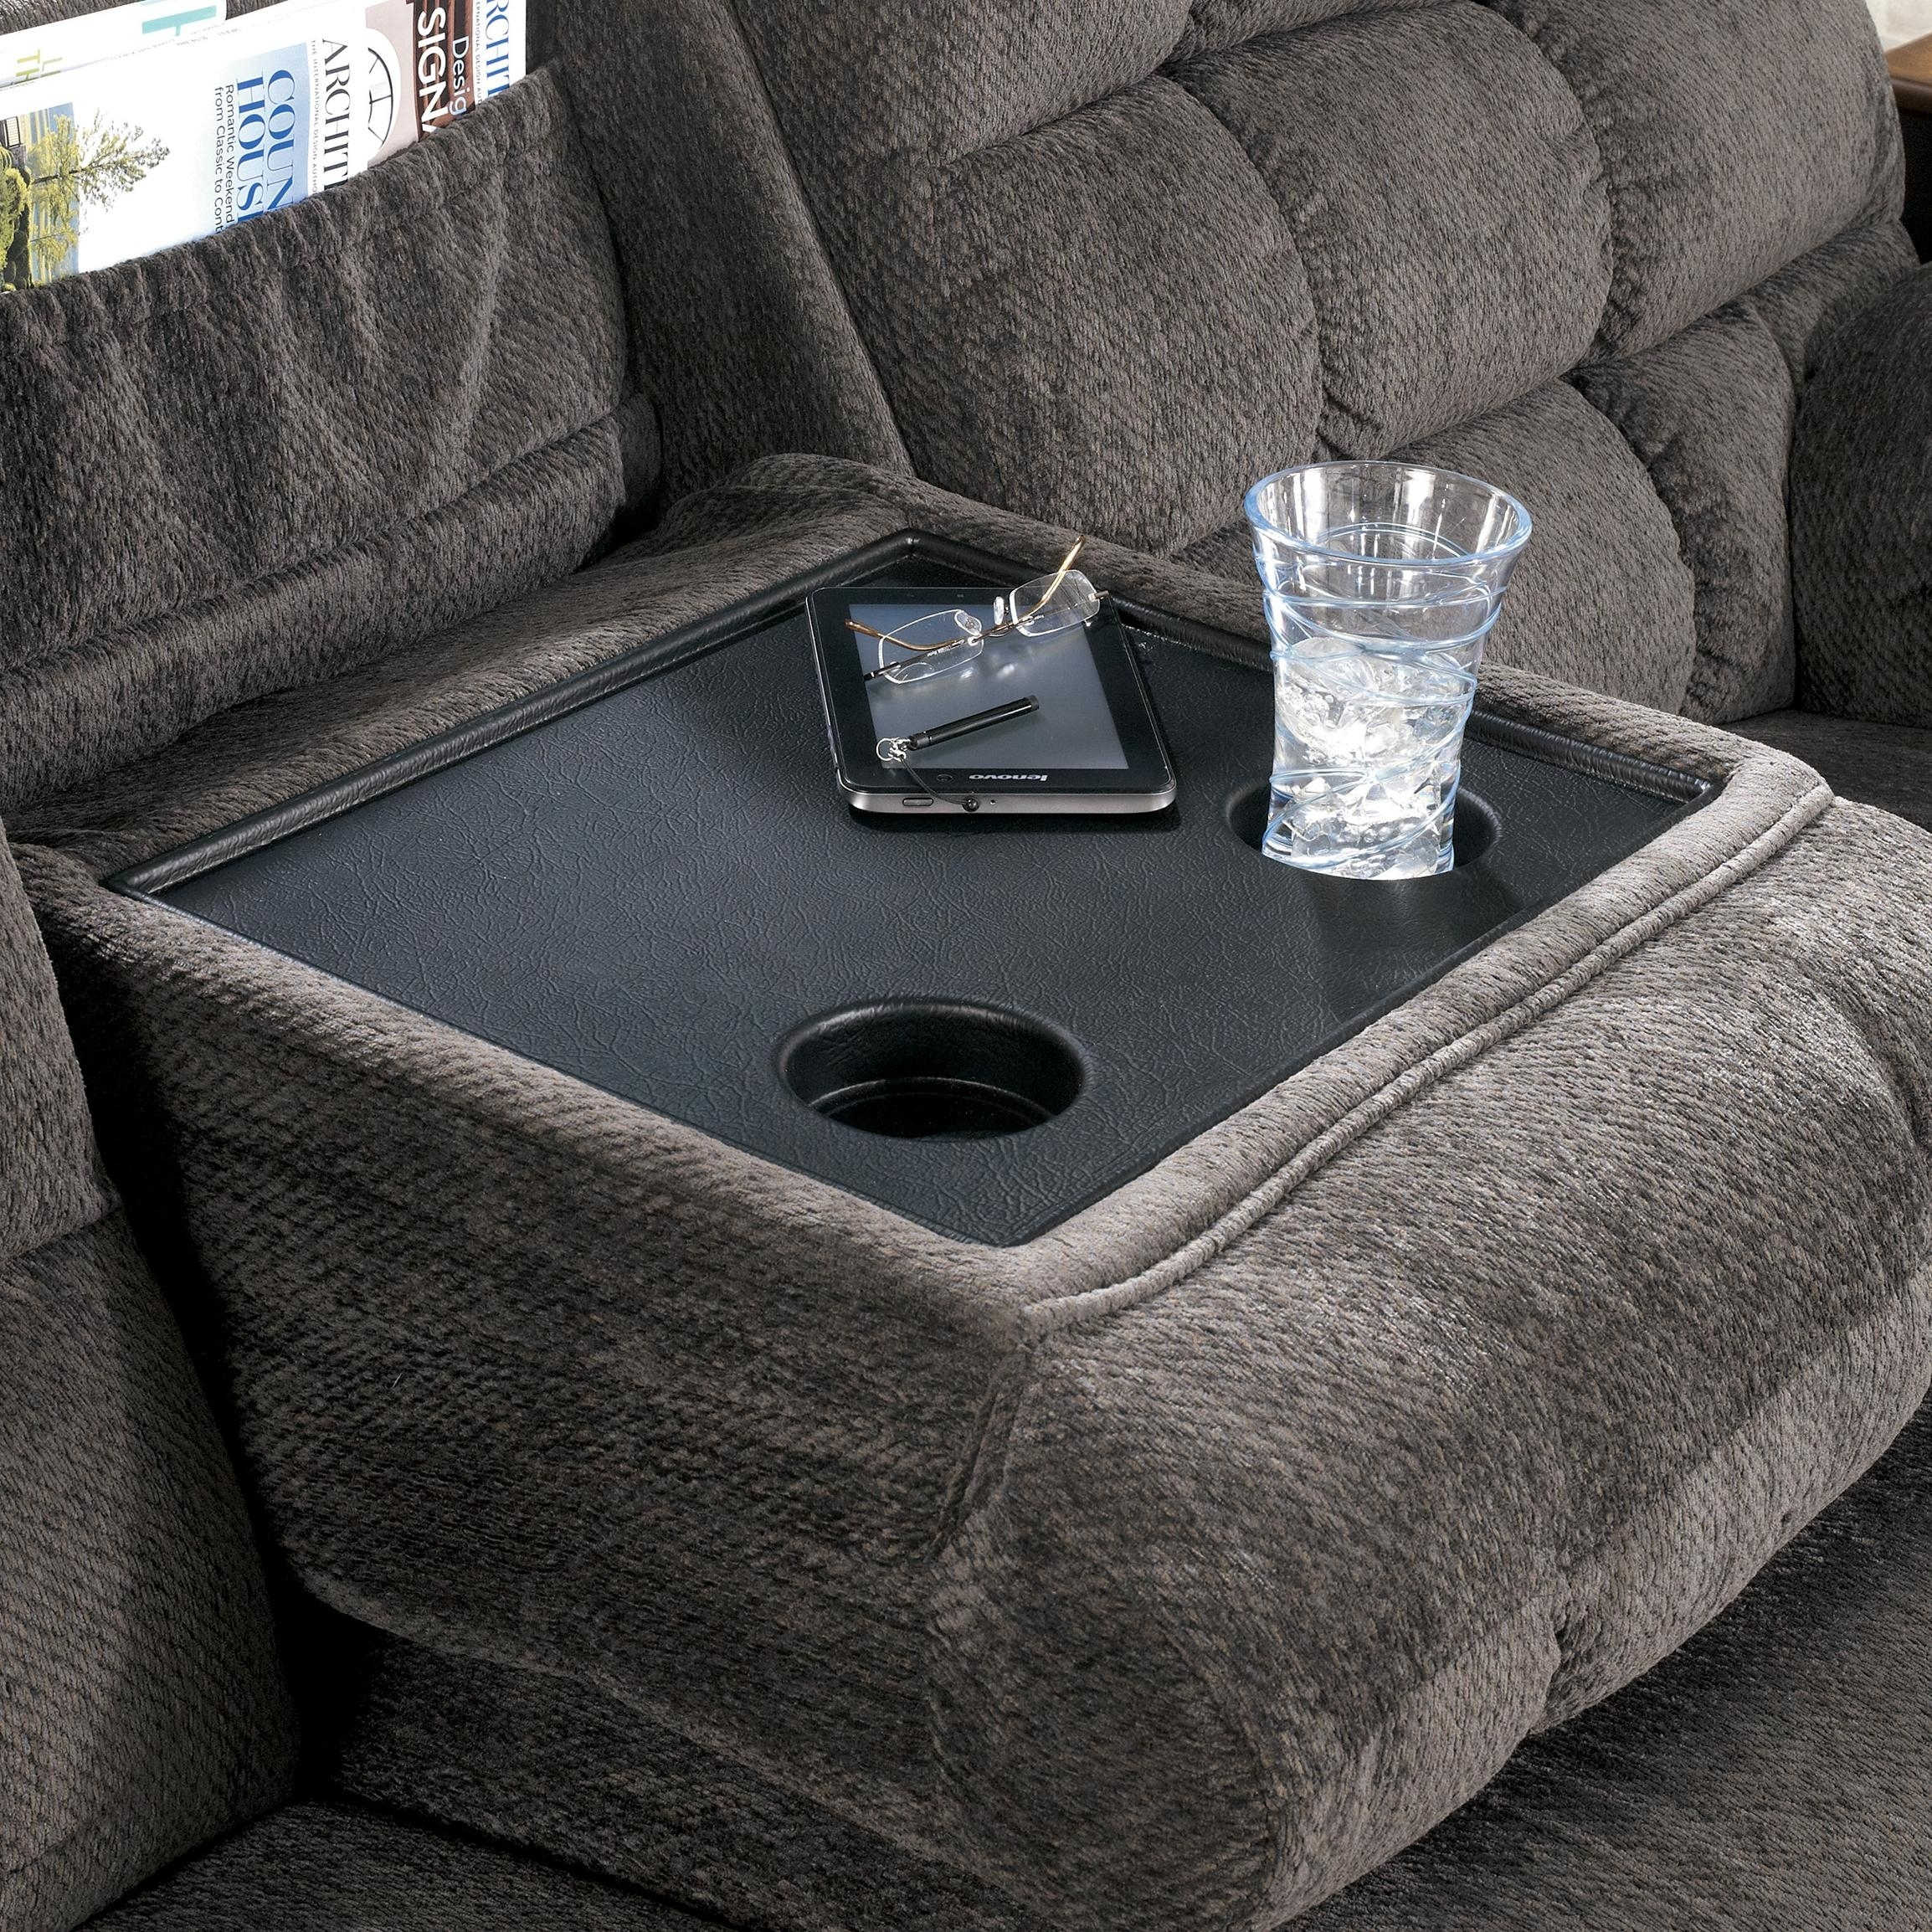 Reclining Sofa With Drop Down Table And Cup Holderssignature with Sofas With Drink Tables (Image 7 of 10)